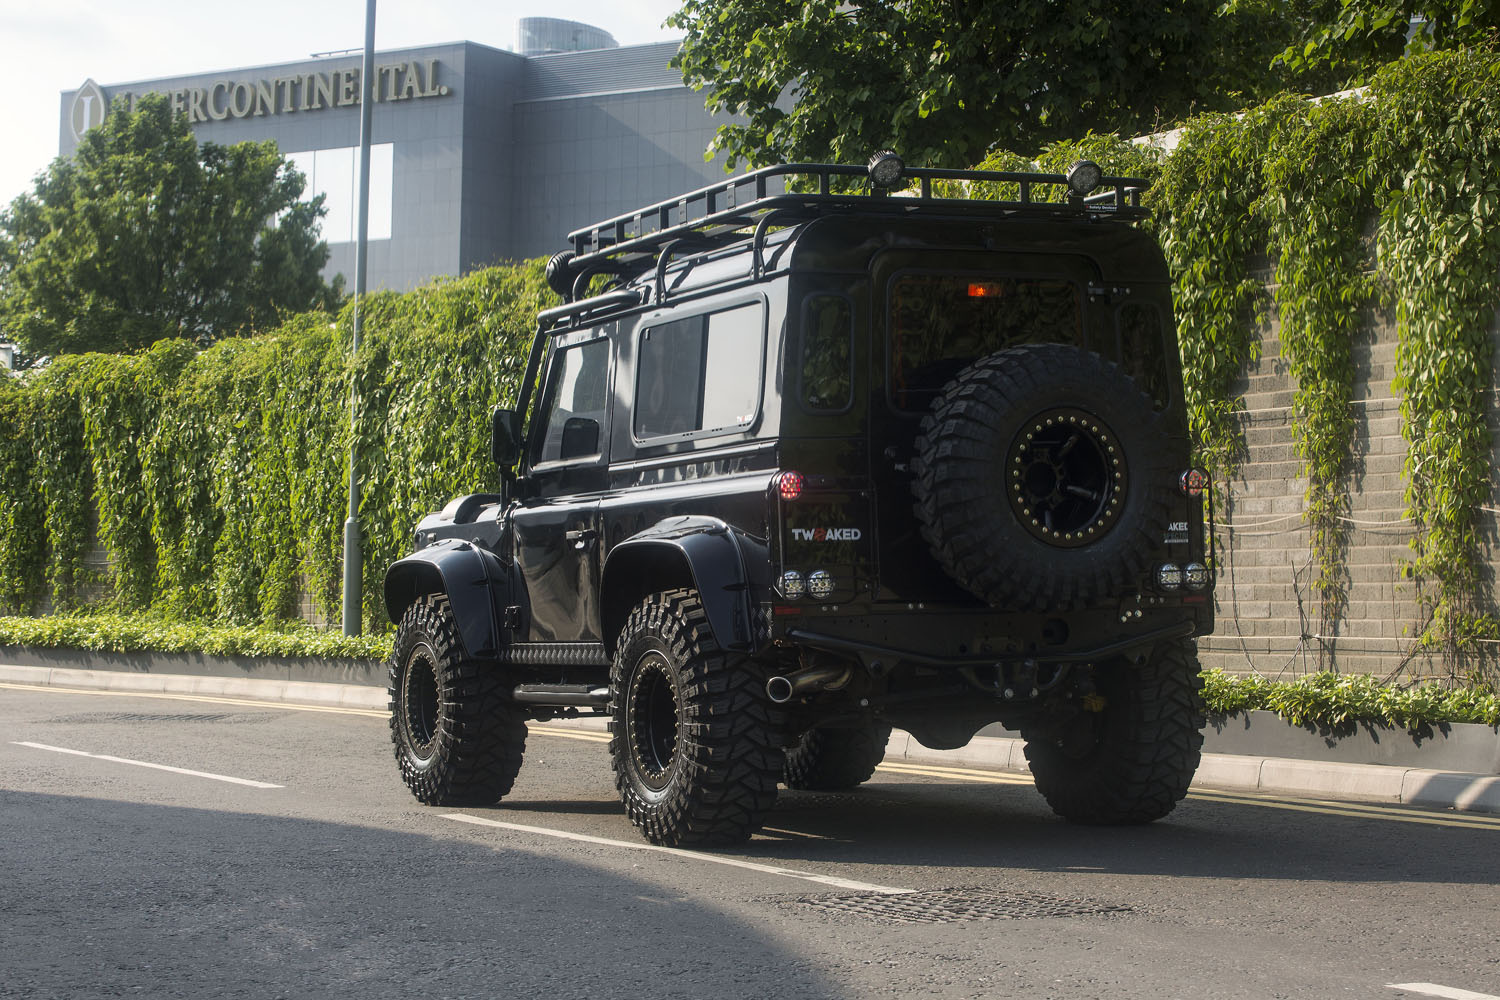 Tweaked Automotive Builds Land Rover Defender 90 Spectre